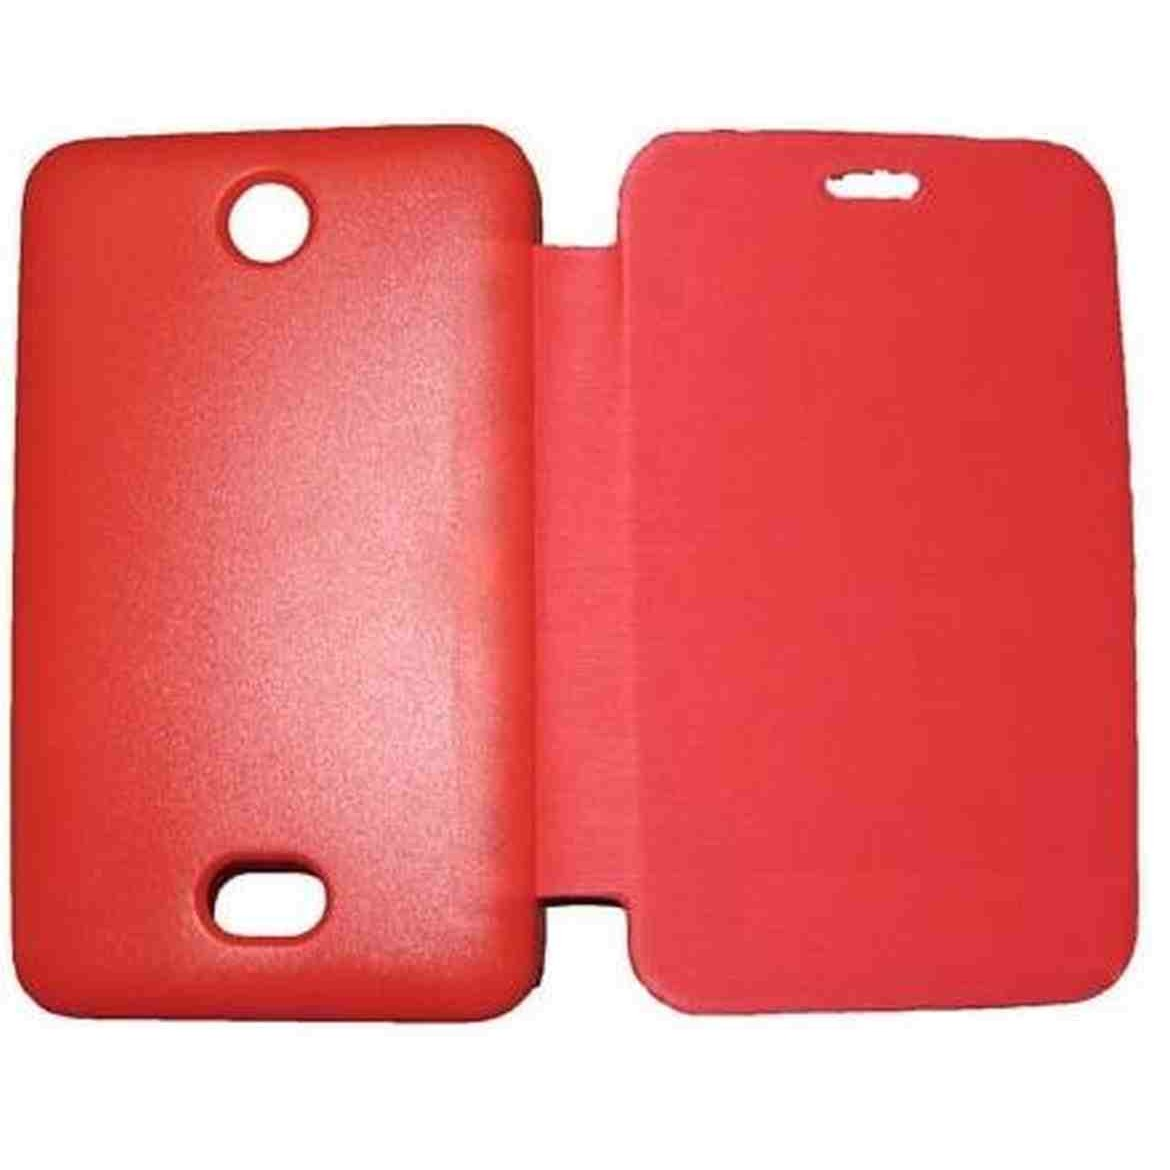 online store 0f44a af1aa Flip Cover for Nokia Asha 501 - Red